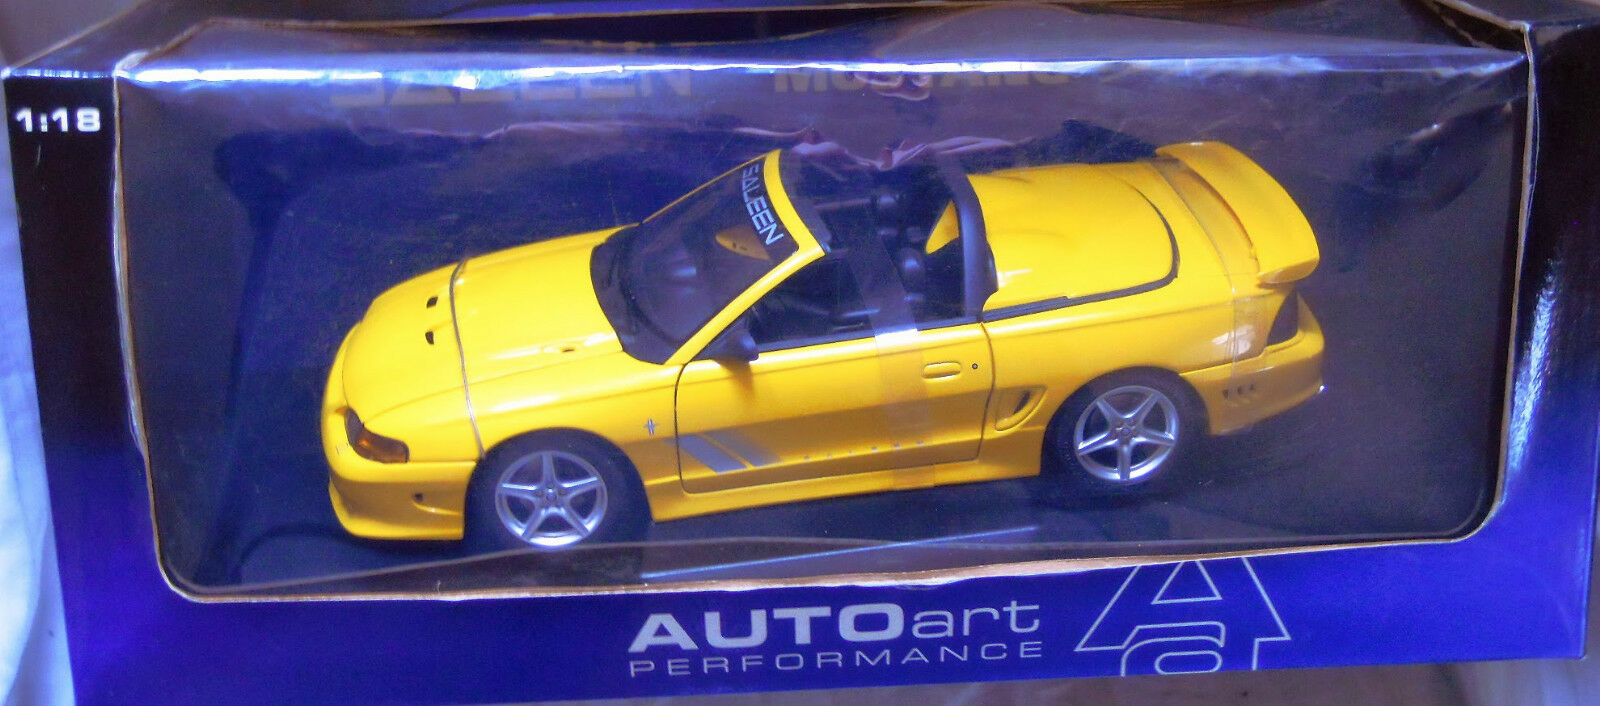 Autoart 72731 Saleen Mustang S351, Diecast in 1 18, NEW & BOXED-VERY RARE